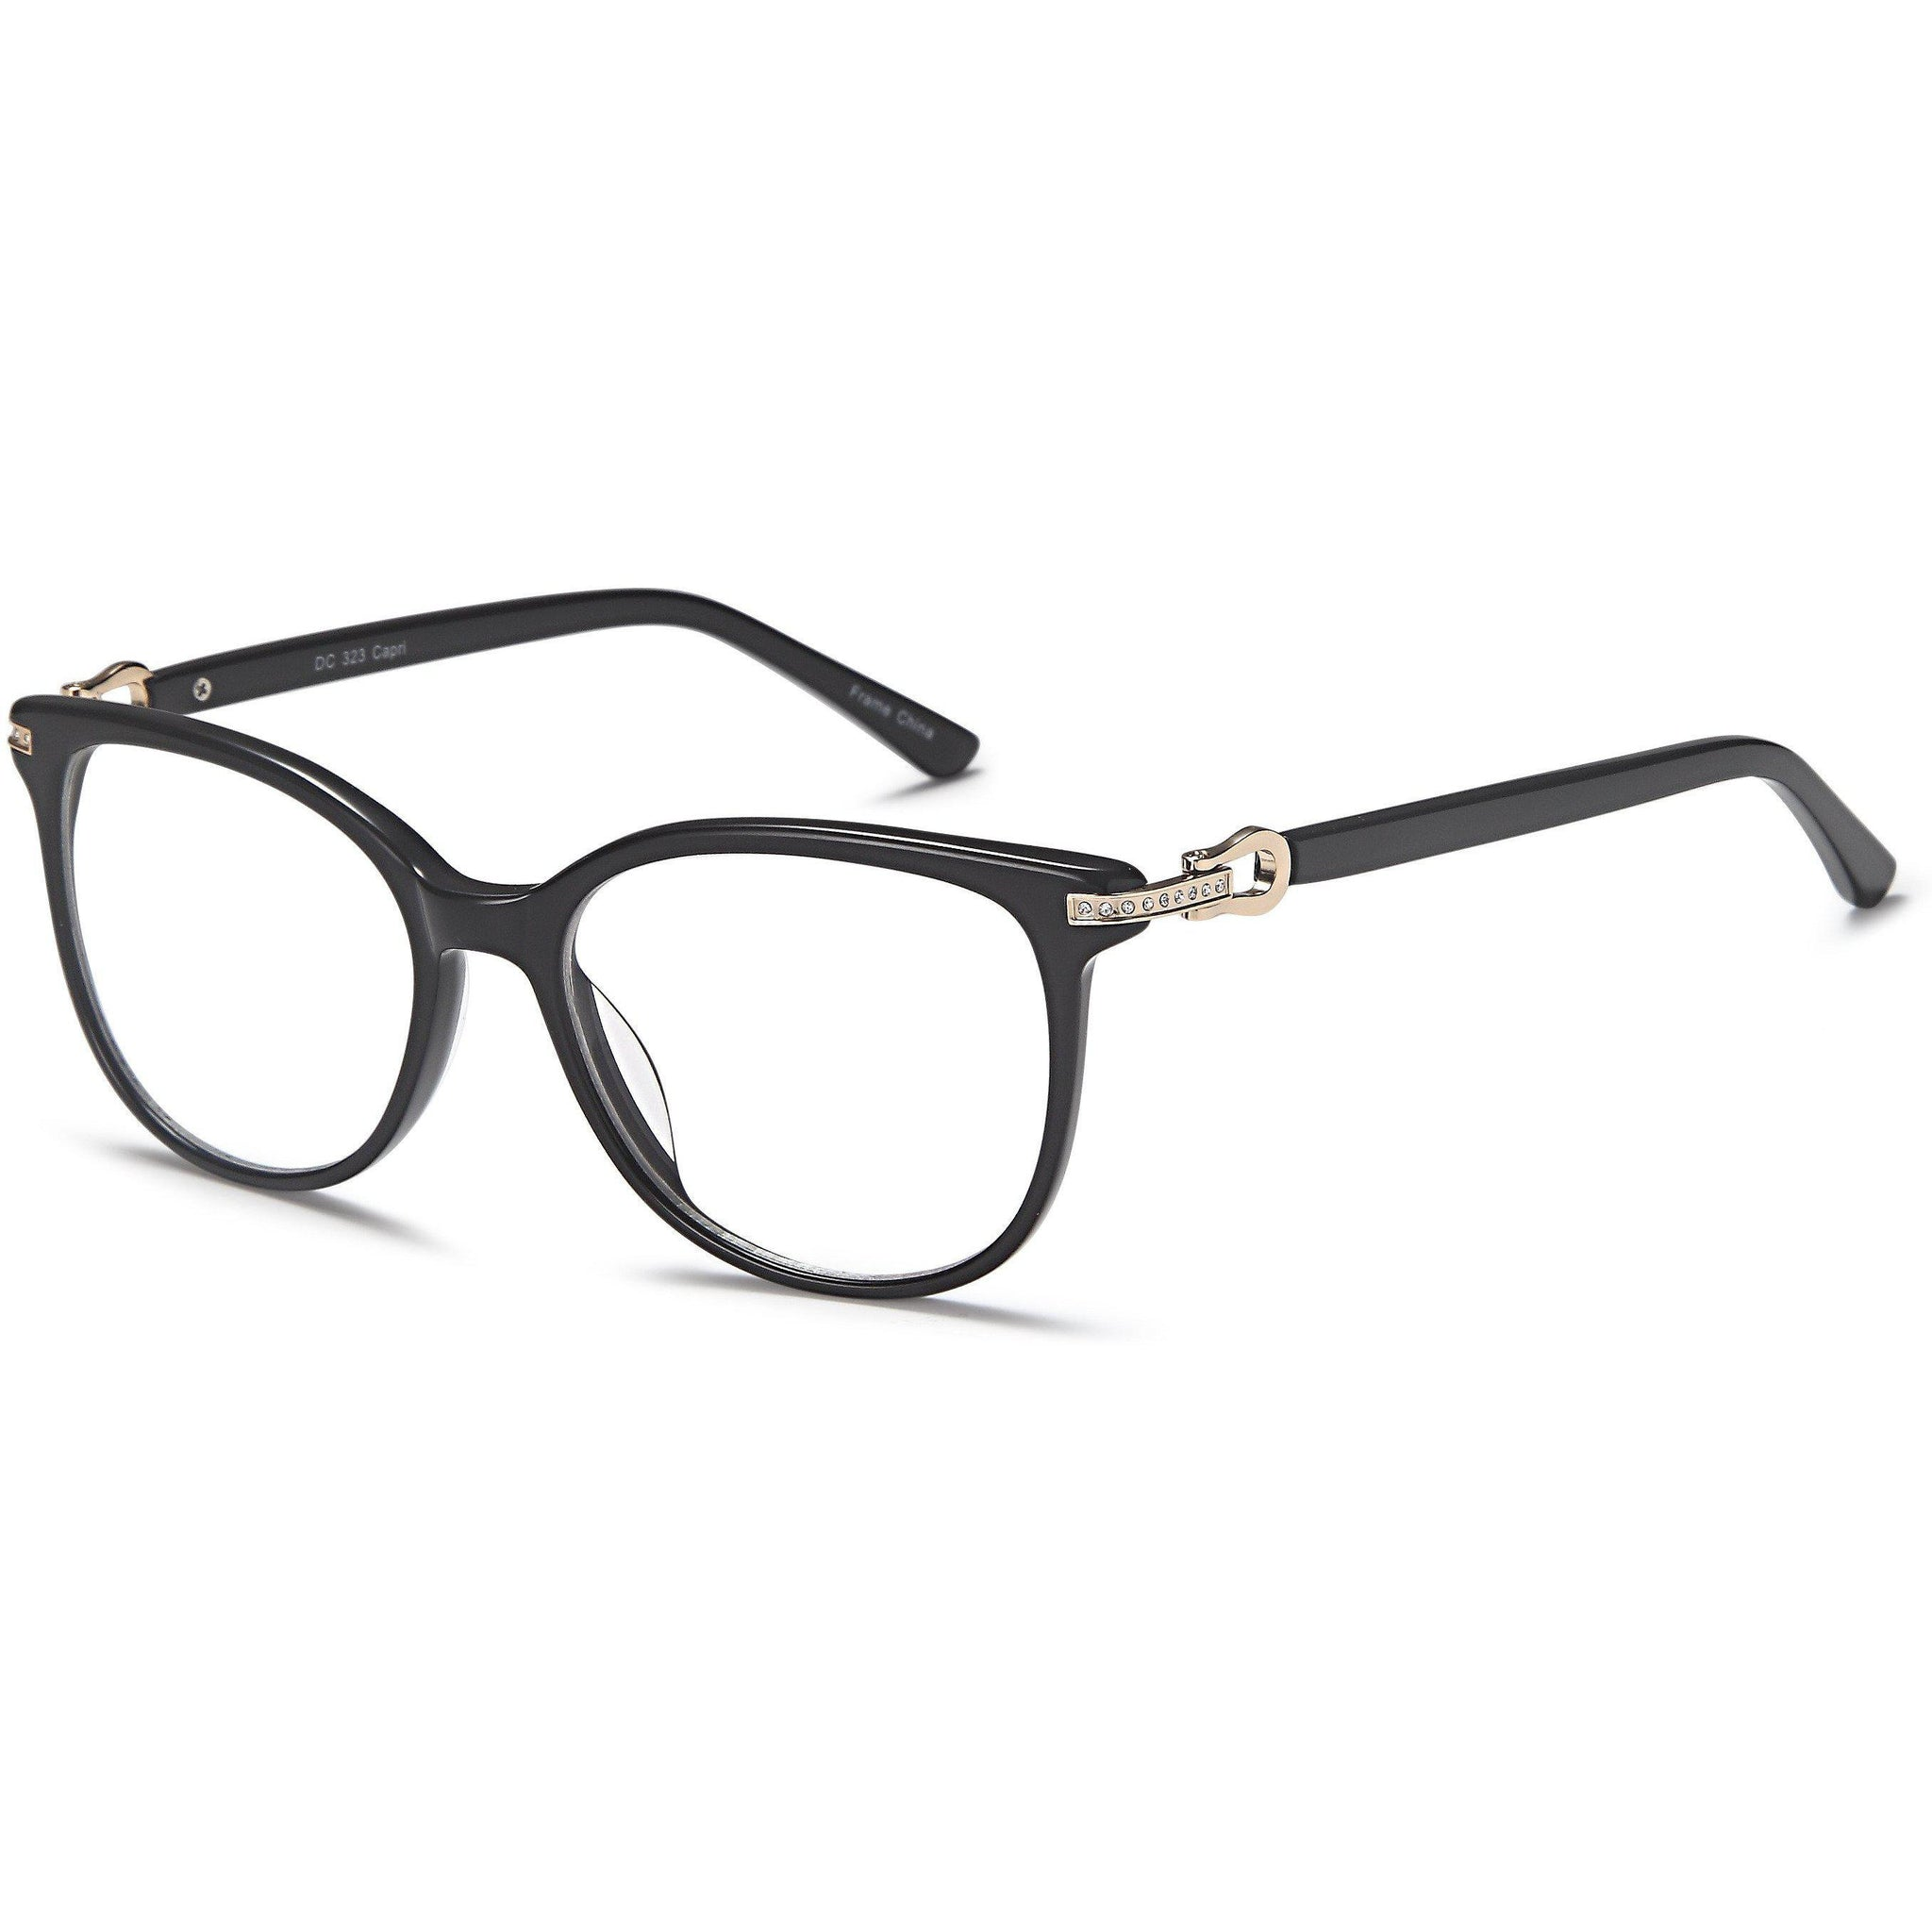 Di Caprio Prescription Glasses DC 323 Eyeglasses Frame - timetoshade